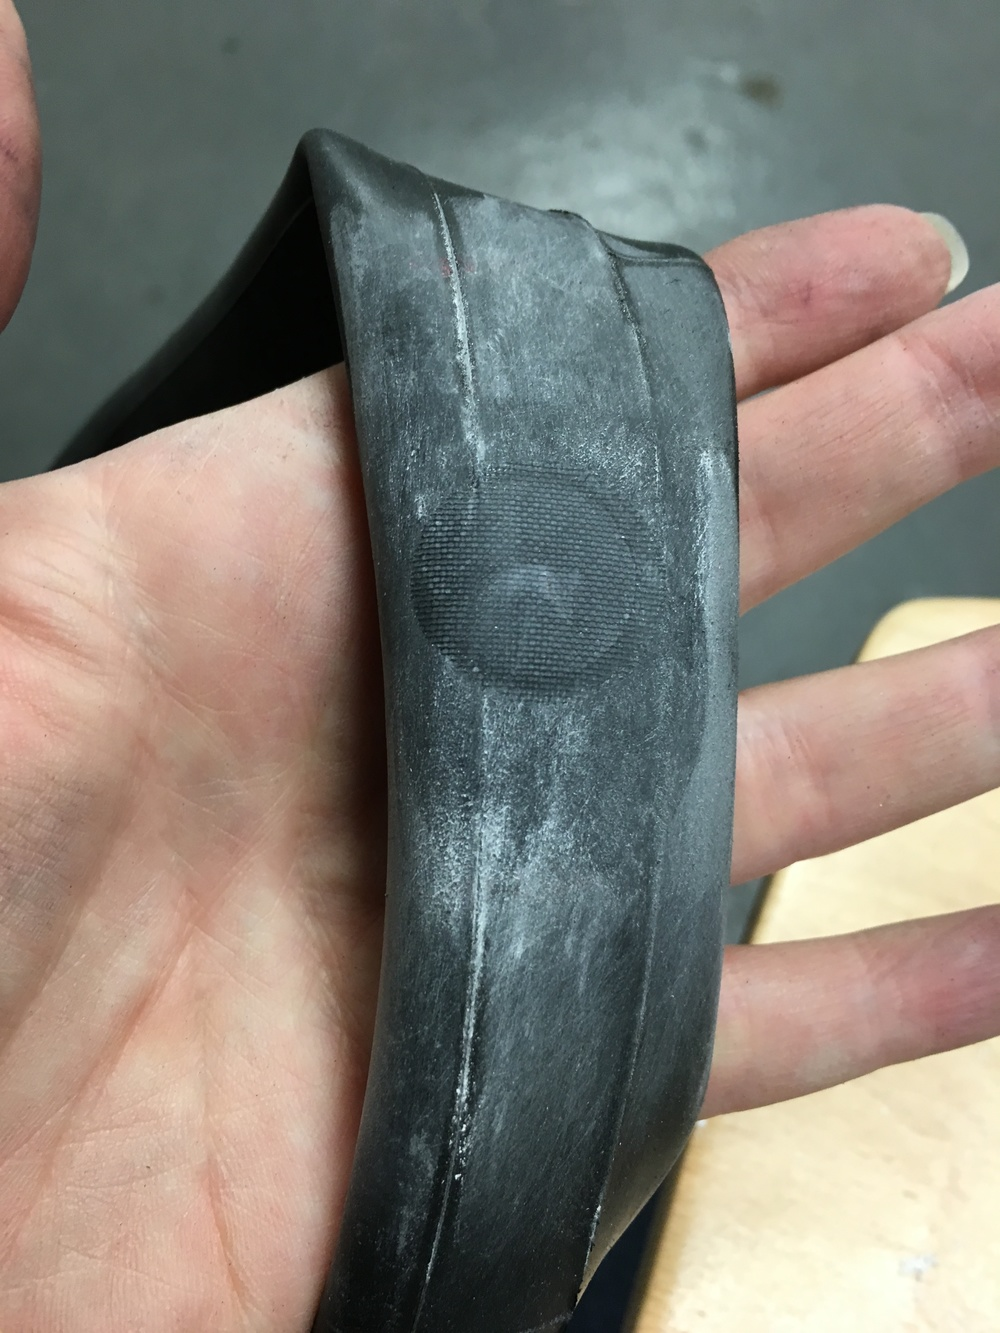 Impressed by our professional looking inner tube repair?